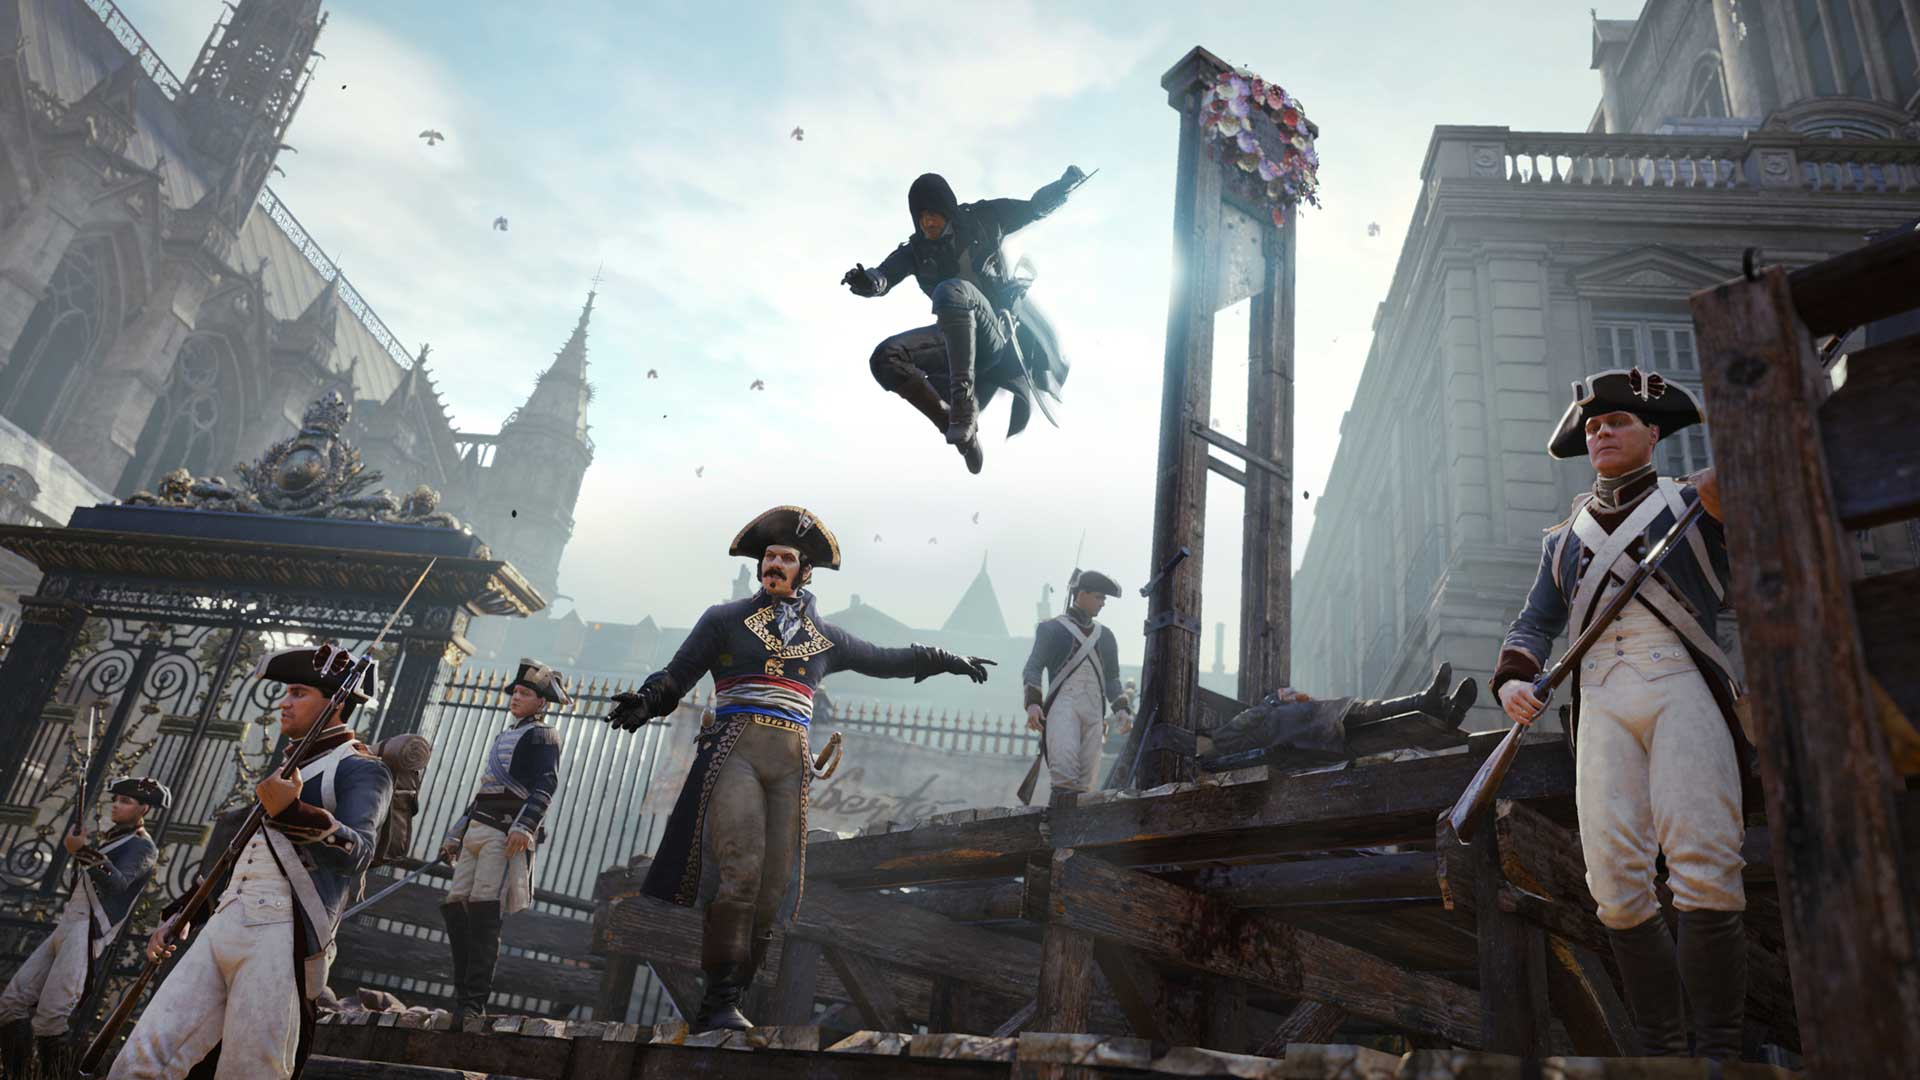 A screenshot from Assassin's Creed Unity, by Ubisoft.